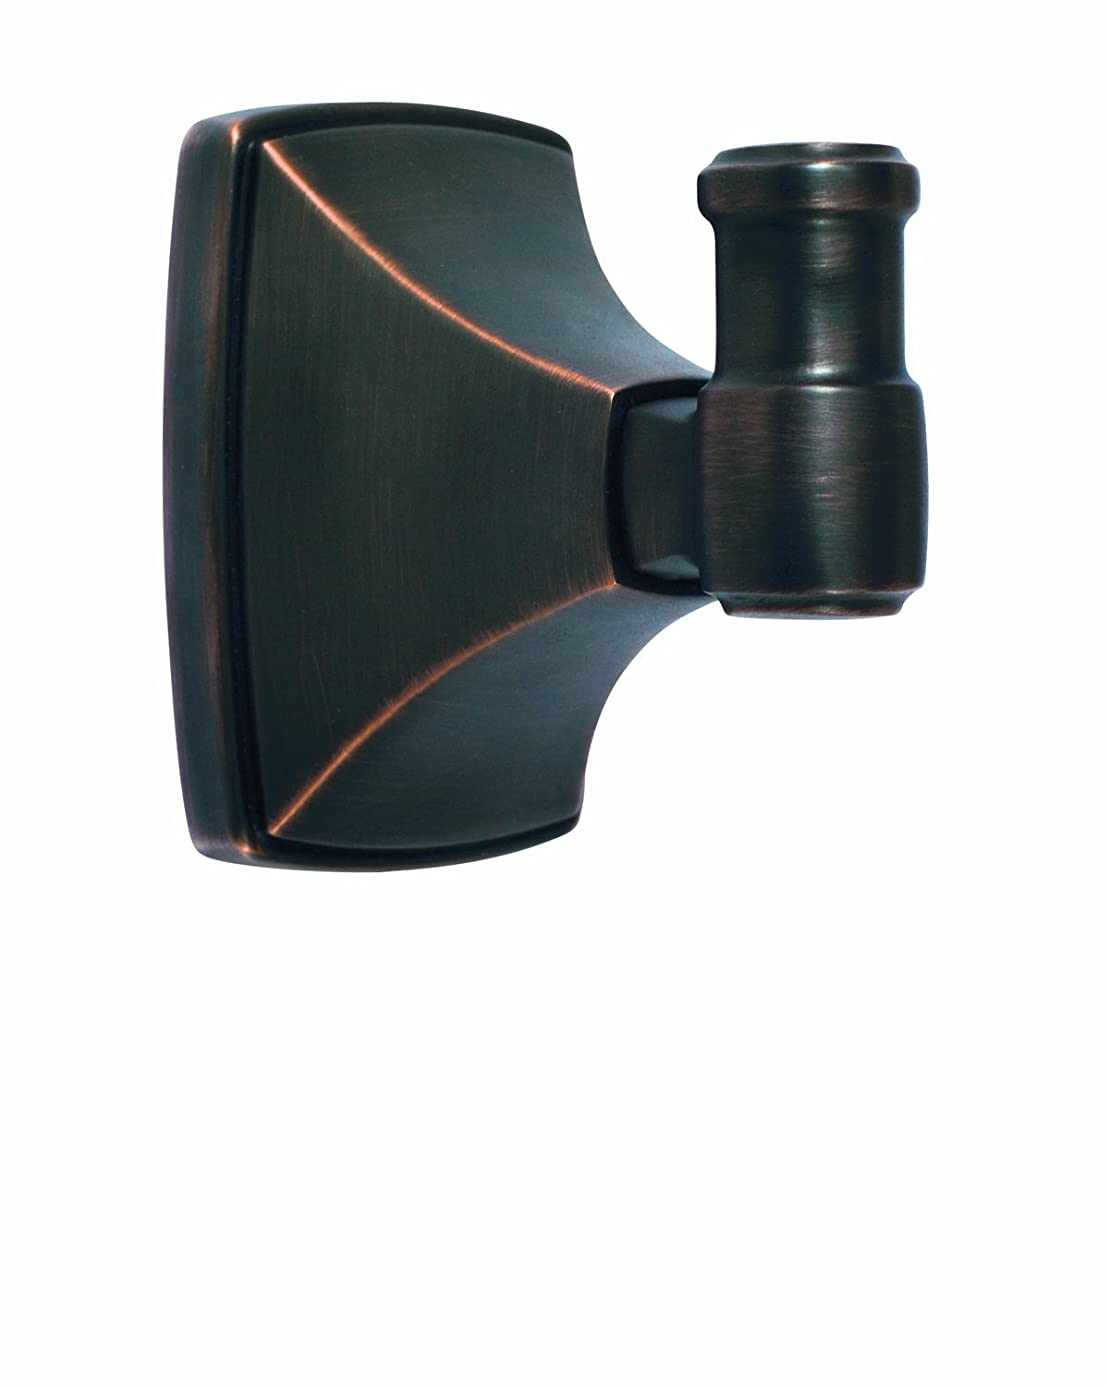 Amerock BH26502ORB Clarendon Robe Hook, 1.75 Inch, Oil-Rubbed Bronze svi5650966